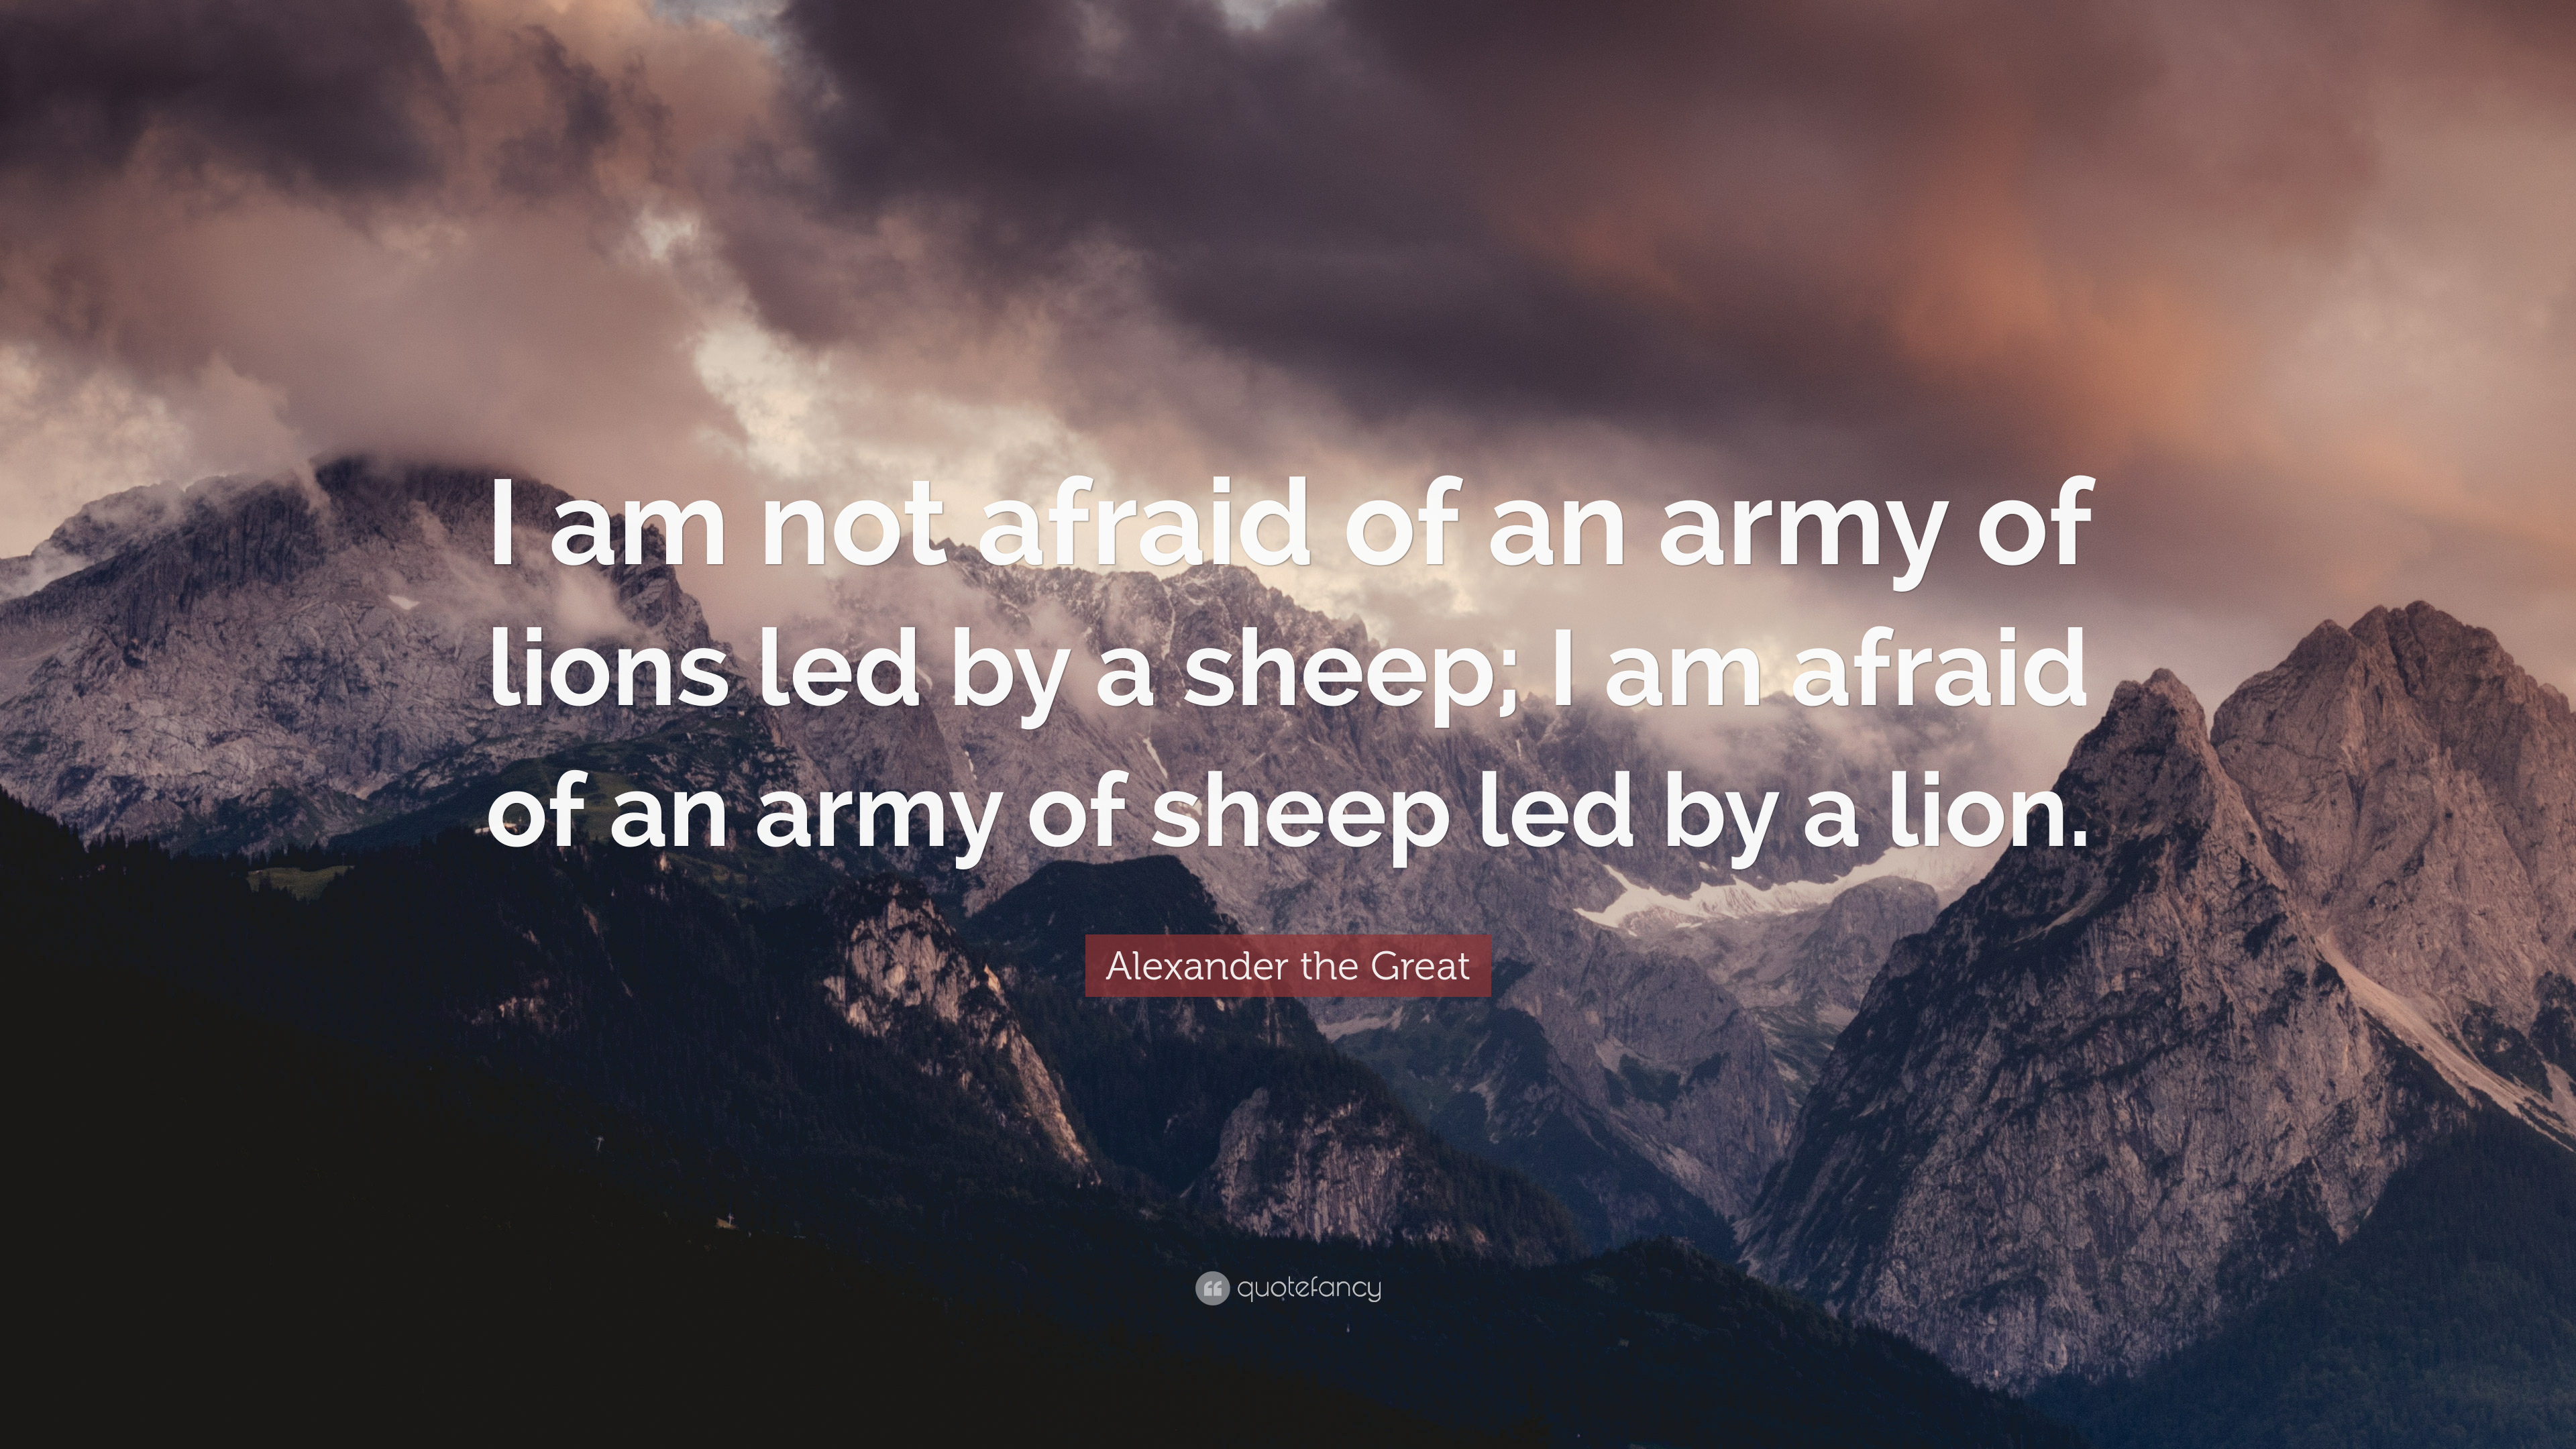 Quotes About Lion And Sheep Best Image And Description About Lion